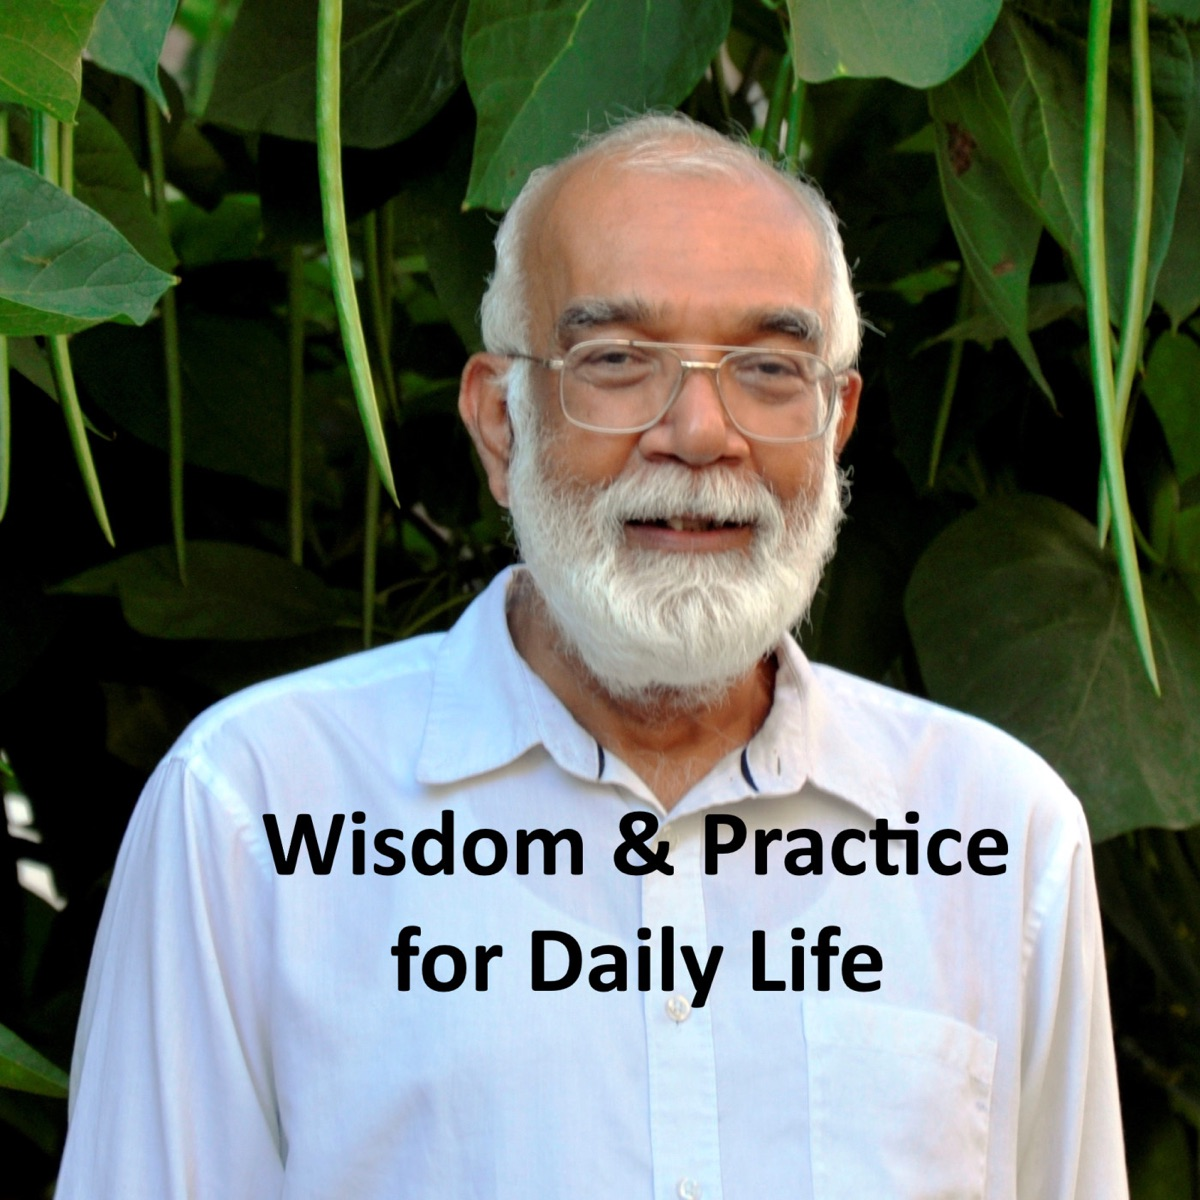 06. Wisdom & Practice for Daily Life